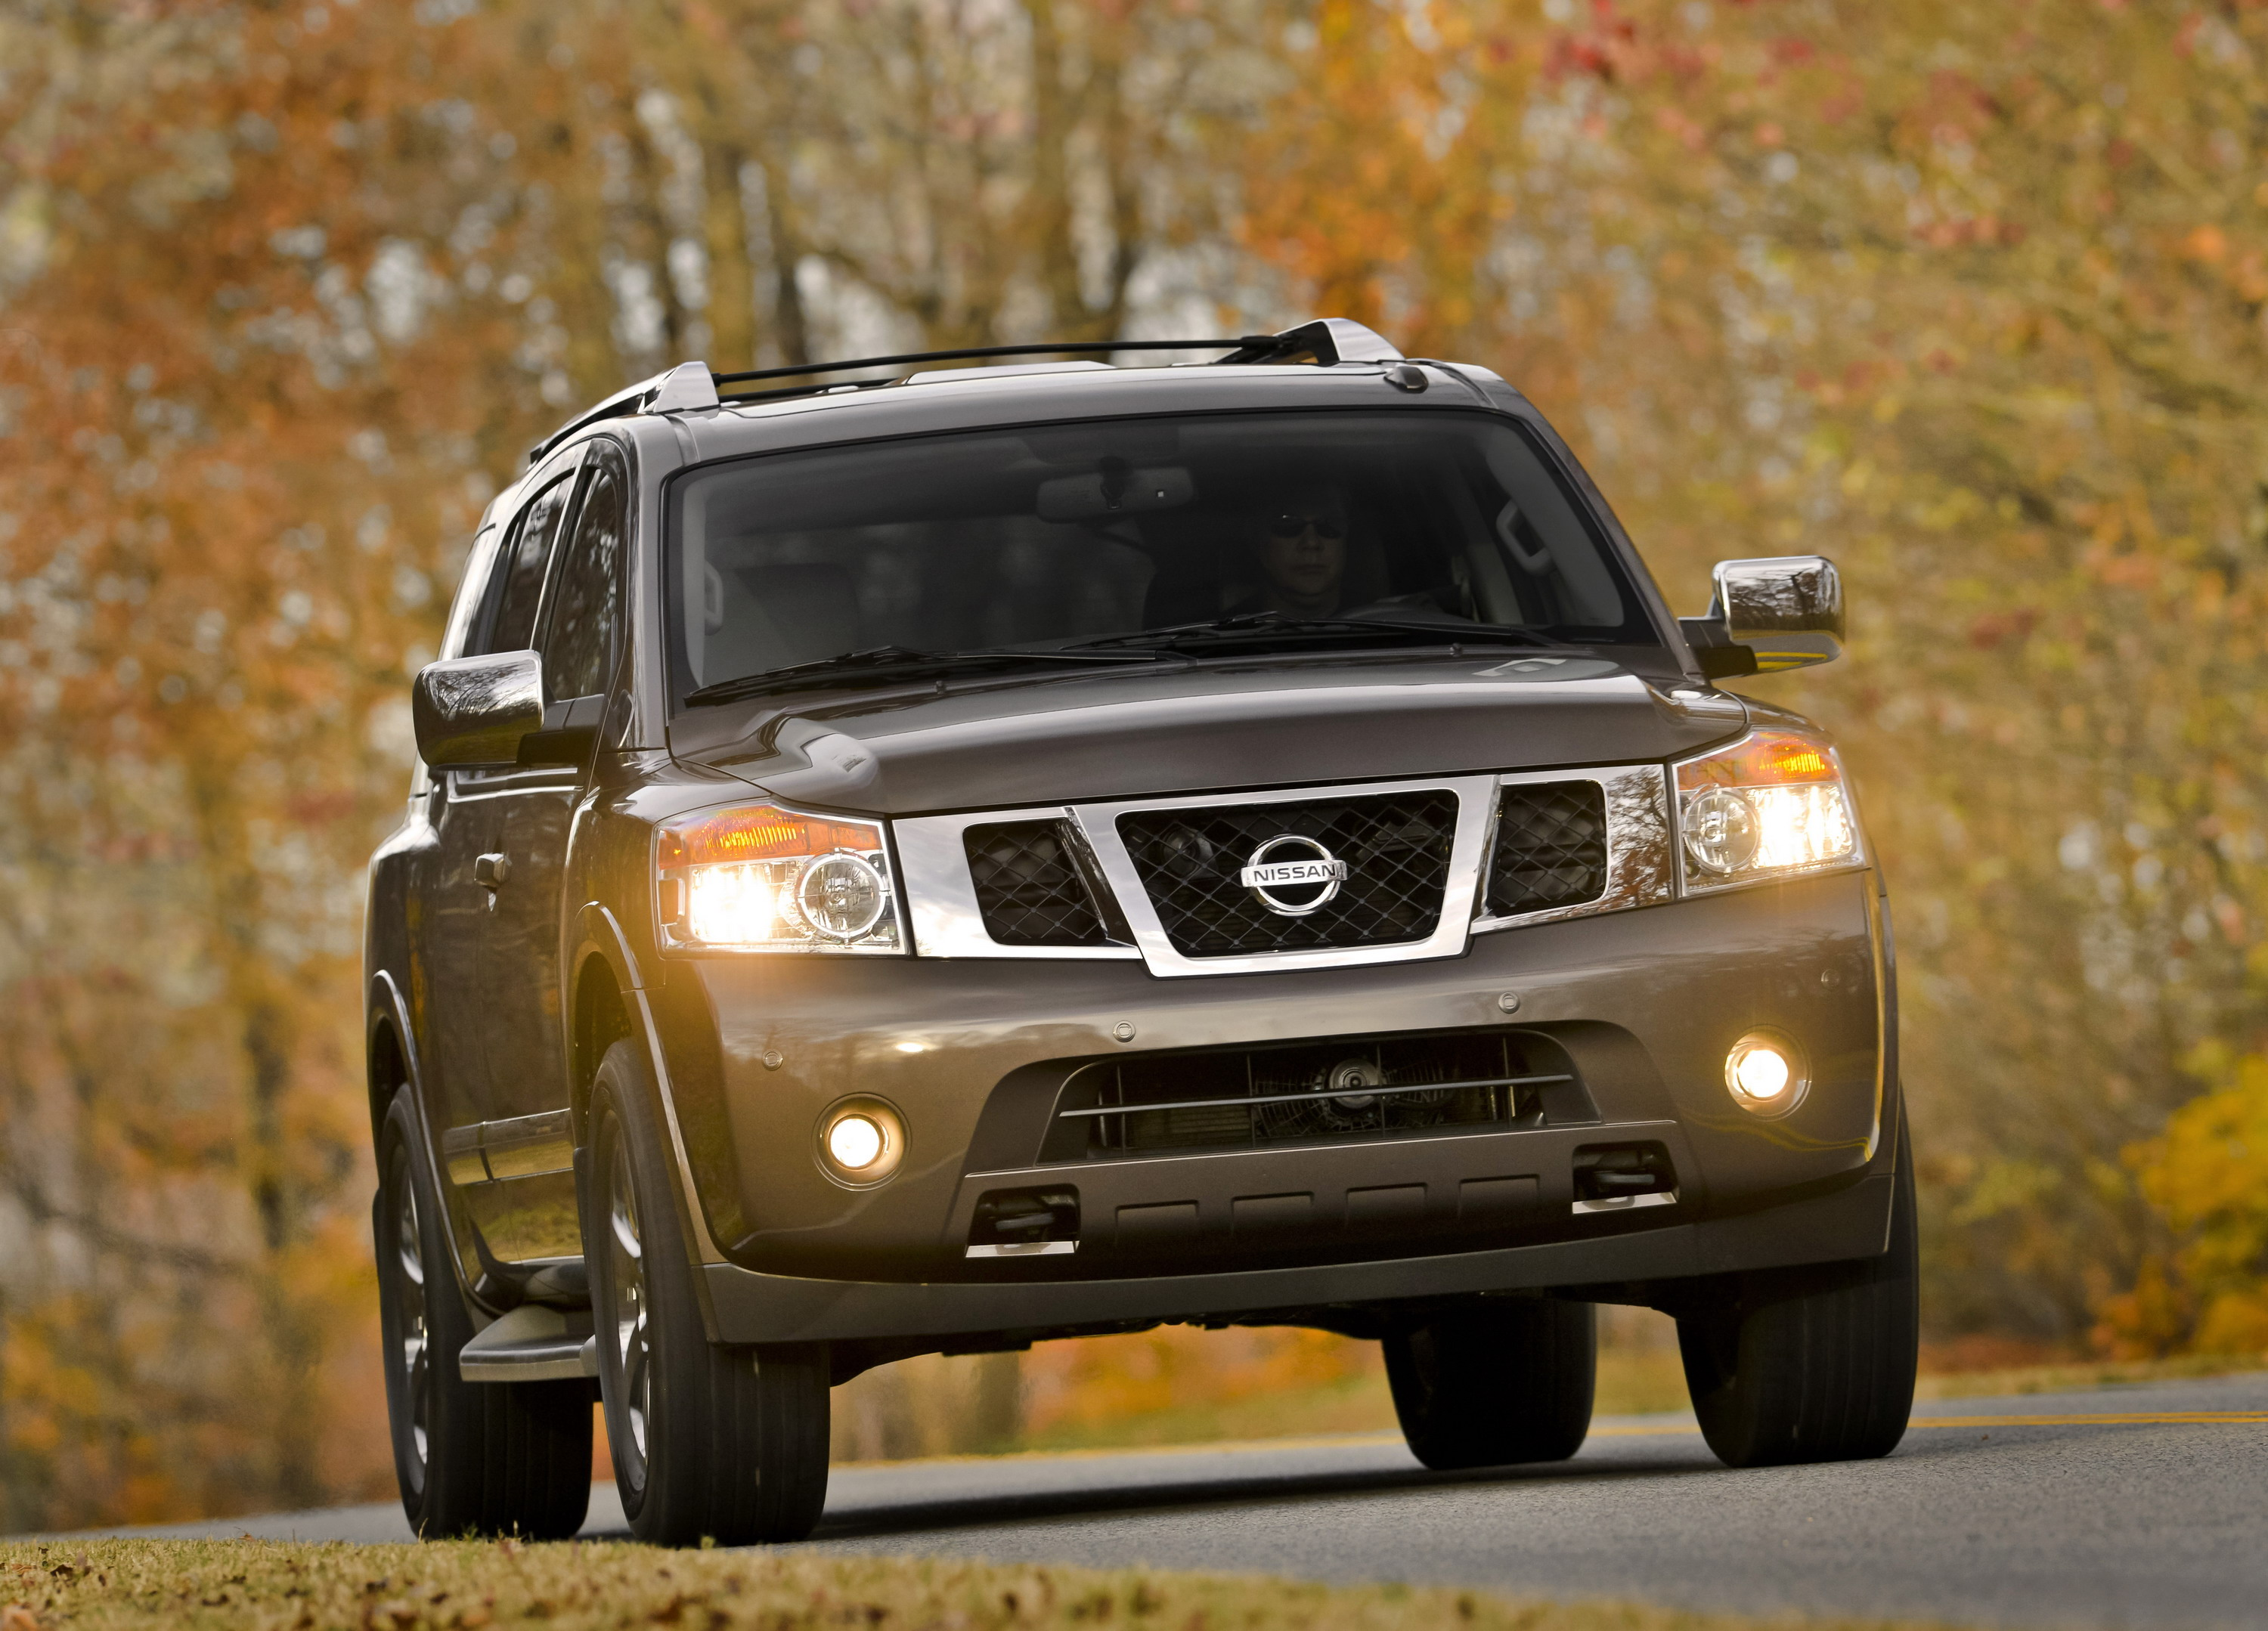 texas is model october the fair nationwide armada nissan platinum dealerships state late at scheduled in images arrive new to reserve debuts